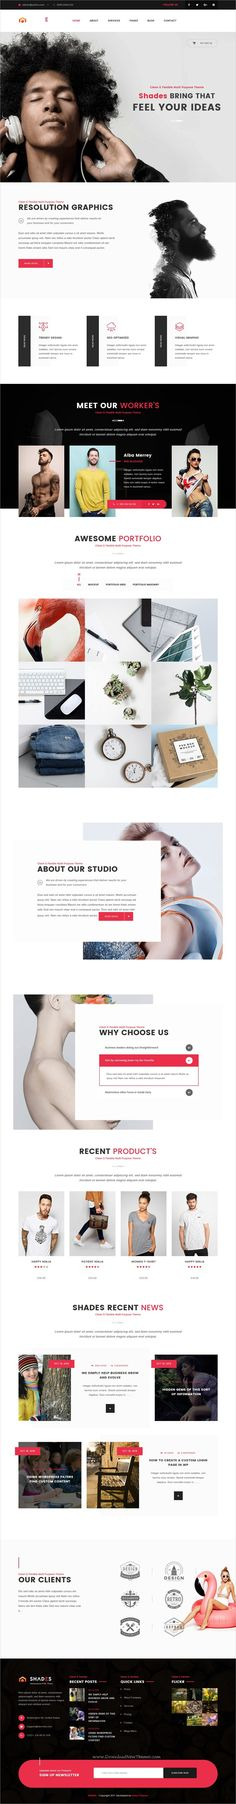 Shades is a wonderful portfolio #WordPress #template for business or #creative agency websites with 6 unique homepage layouts download now➩ https://themeforest.net/item/shades-creative-multipurpose-reponsive-wordpress-theme/19061398?ref=Datasata